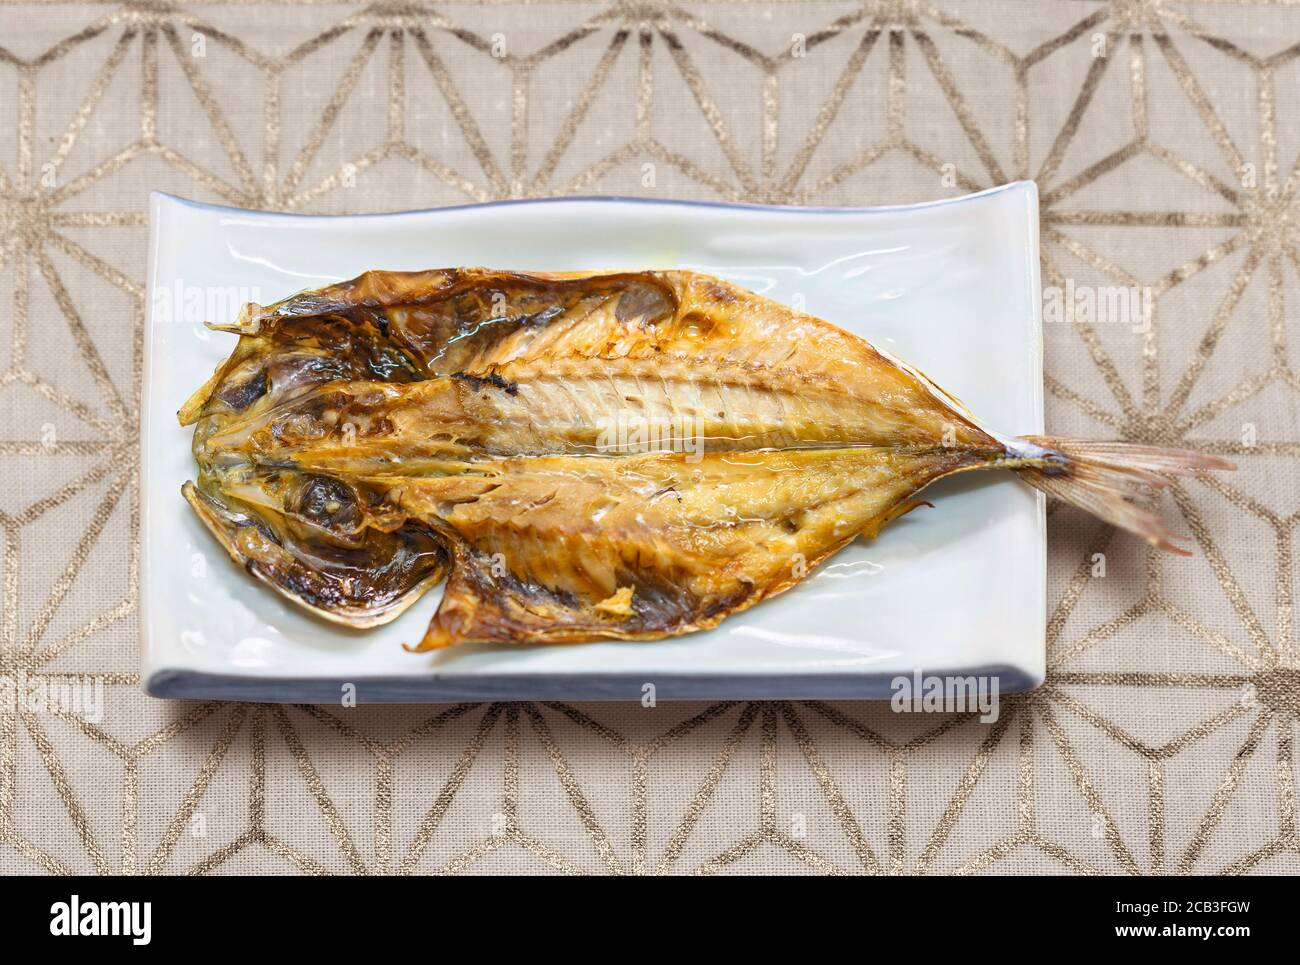 Japanese traditional grilled fish on a flower hemp leaf silver pattern table cloth. Stock Photo